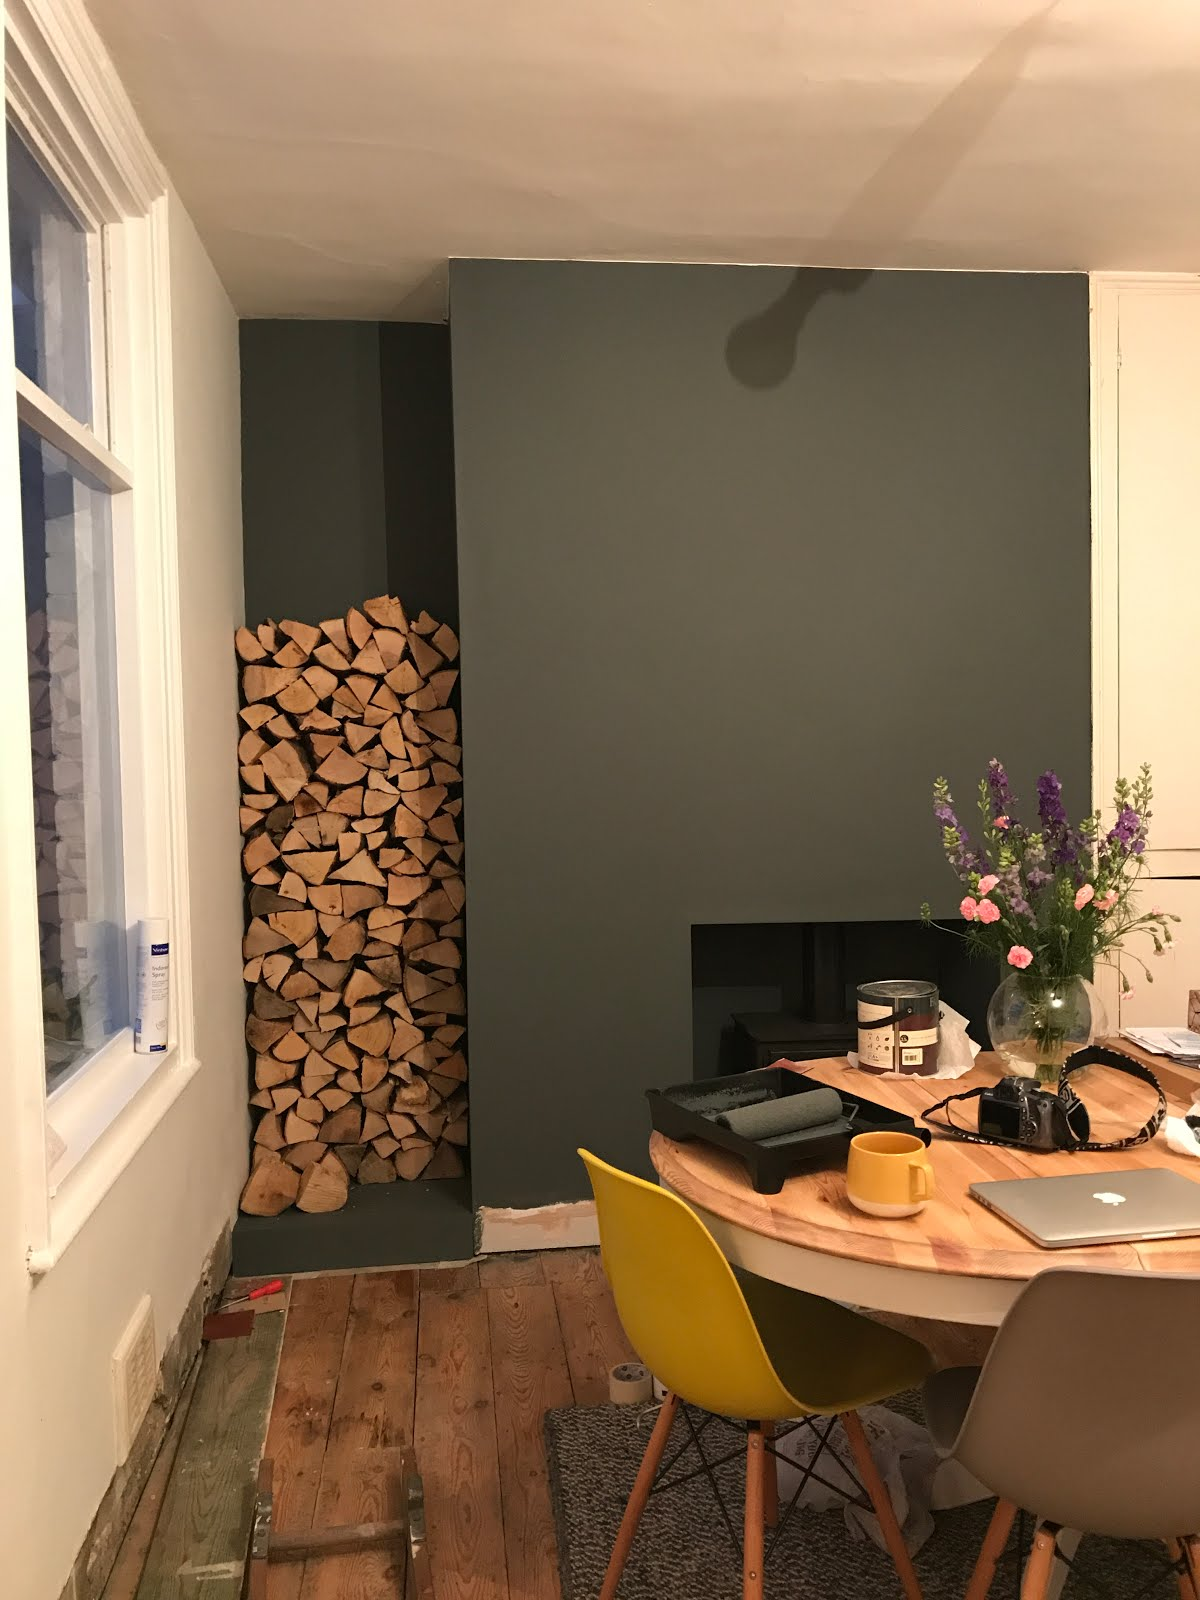 Log Stack in dining room